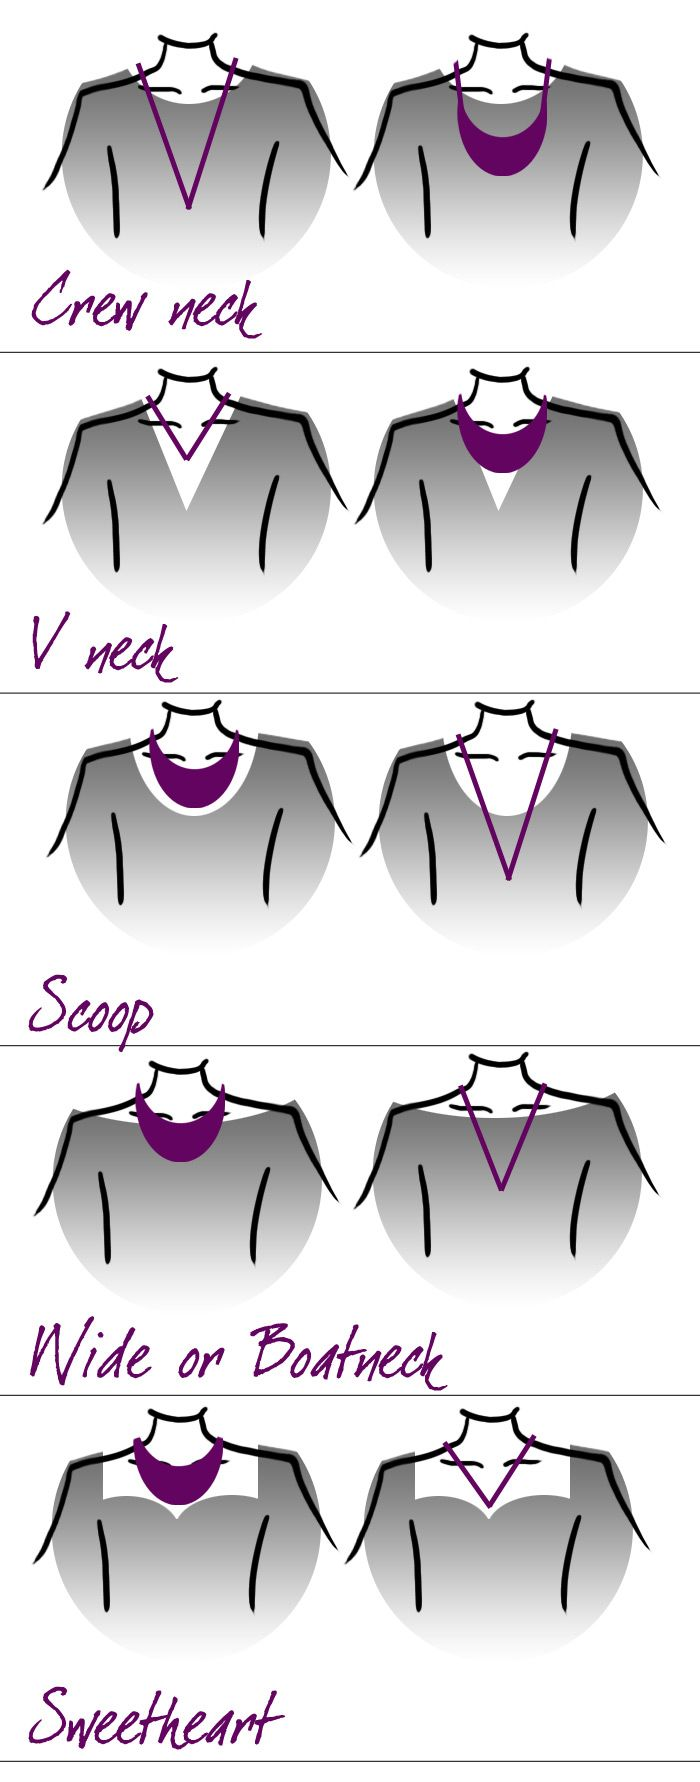 How To: Pick a Necklace for Your Neckline | Domestic in Detroit